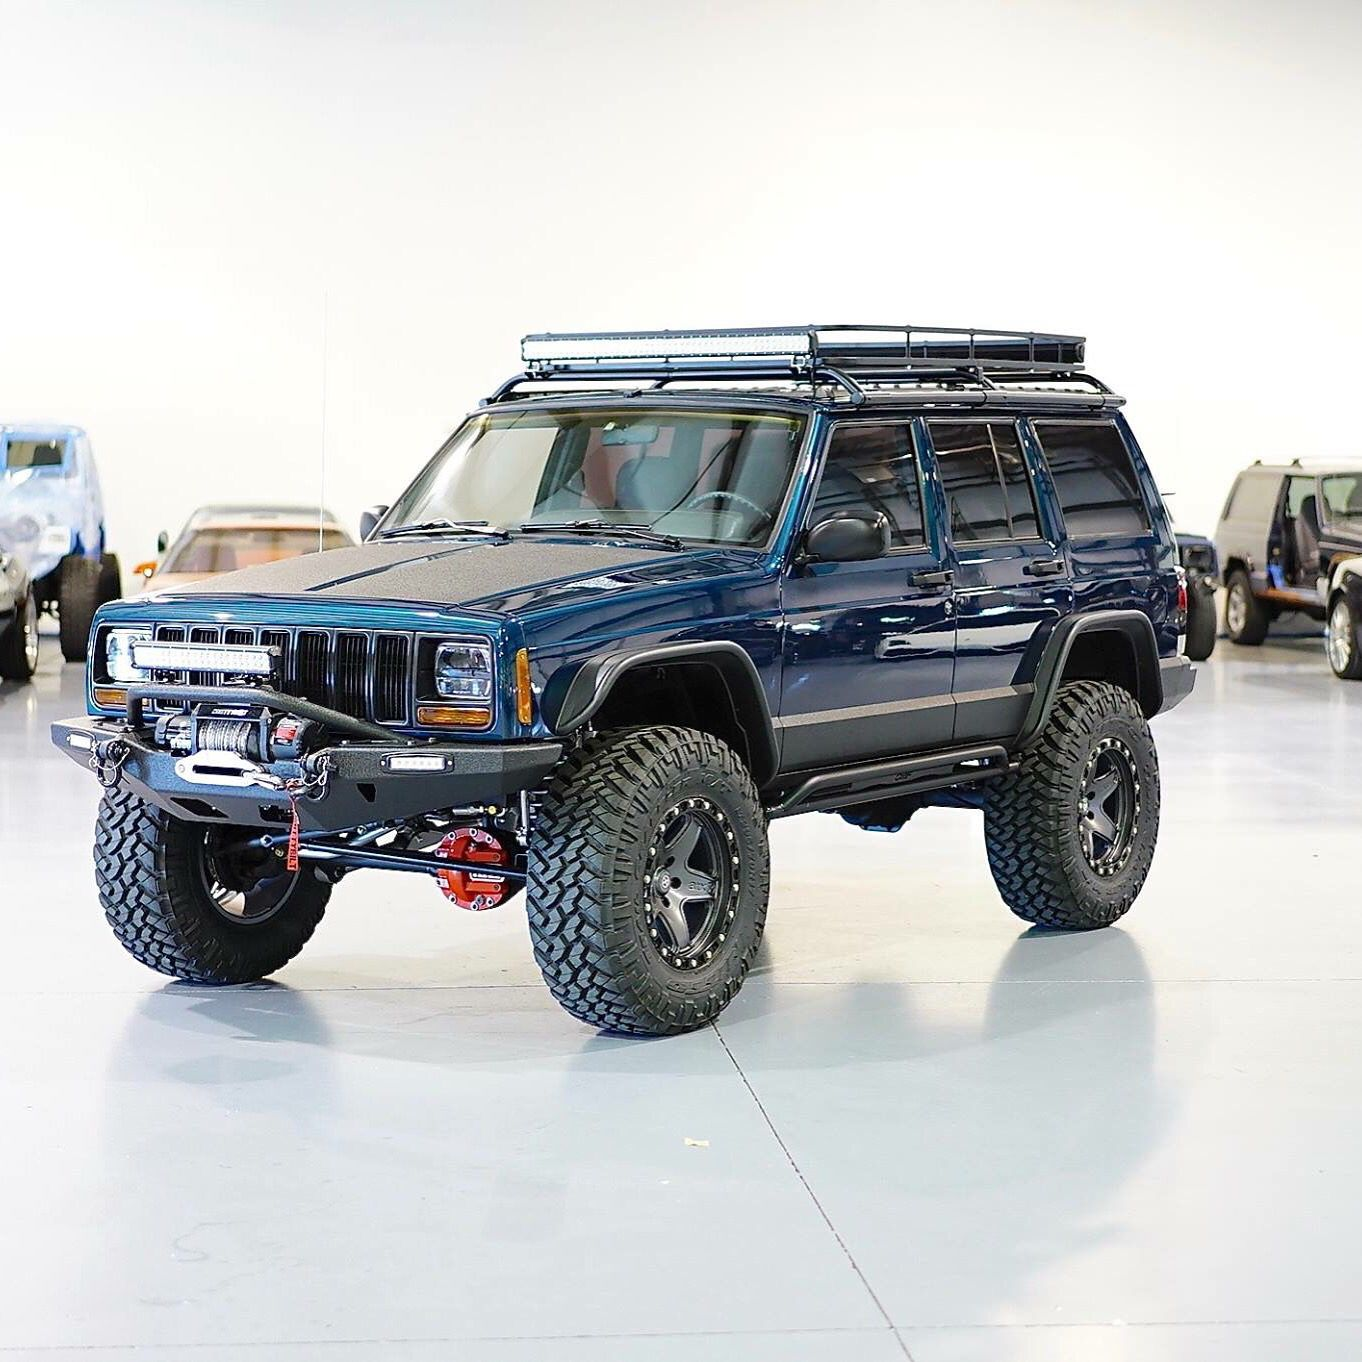 the top 5 modifications for your jeep cherokee that you should lifted jeep cherokee by davis autosports